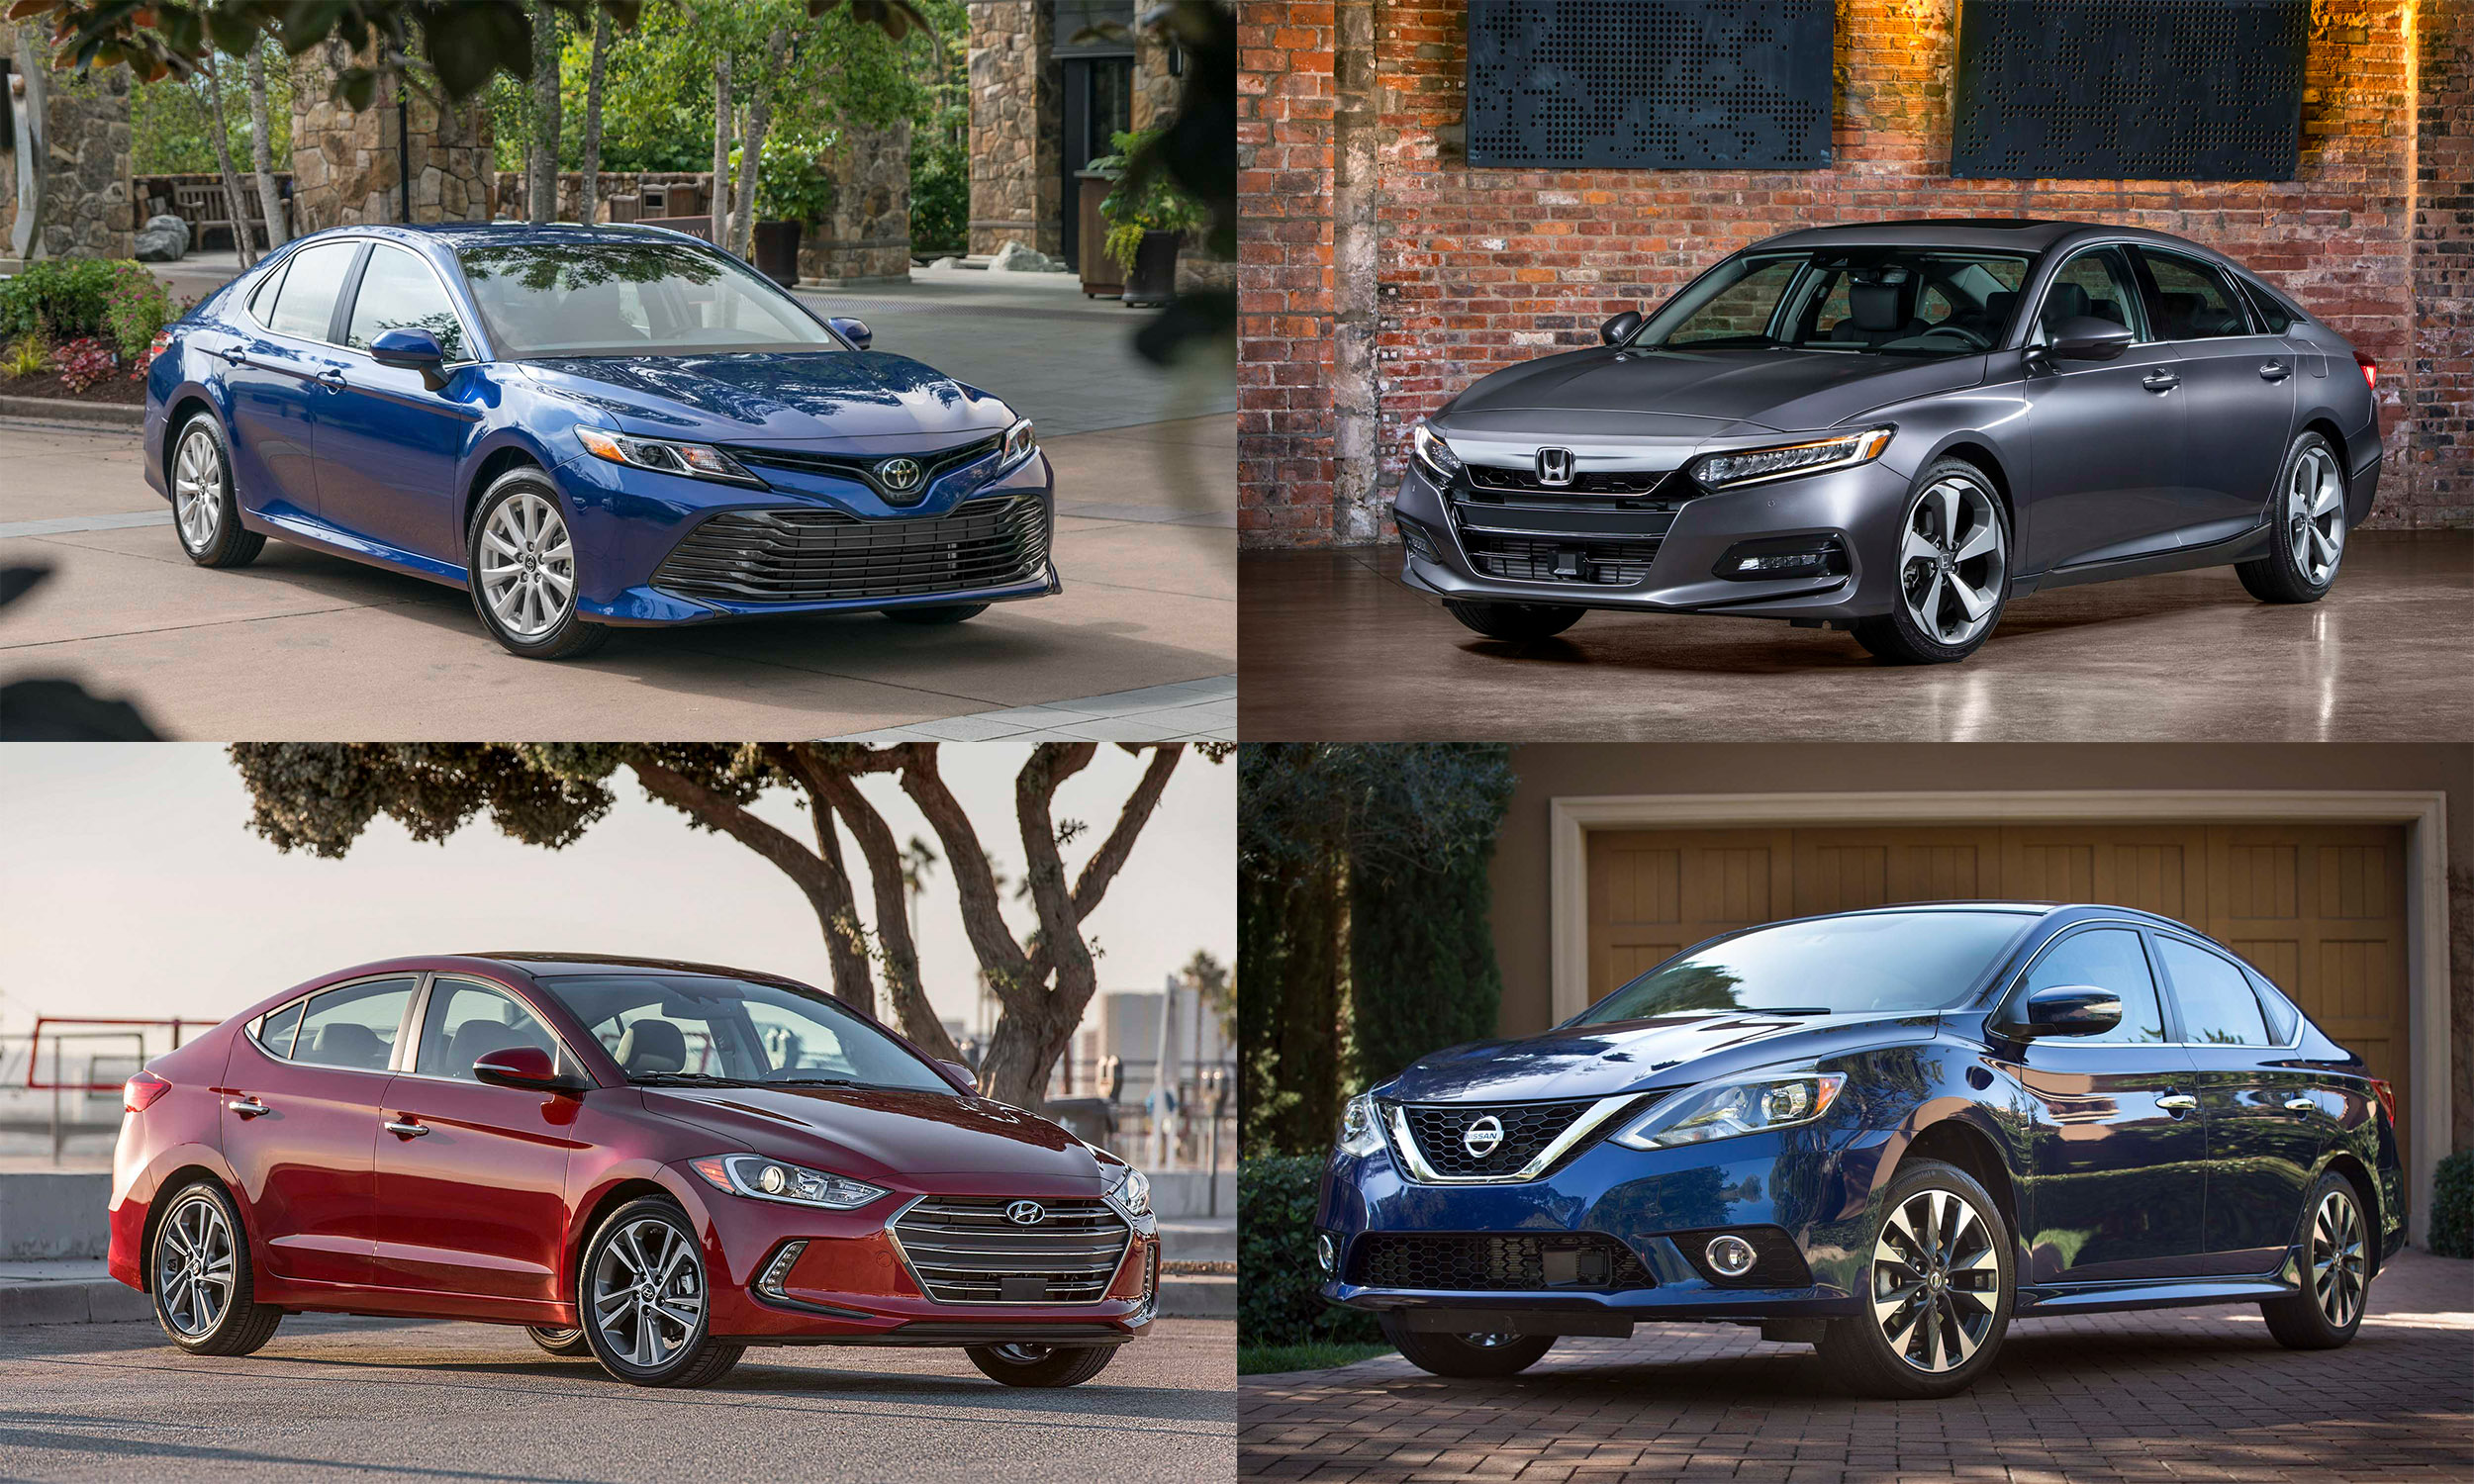 Best-Selling Passenger Cars in the U.S. - » AutoNXT